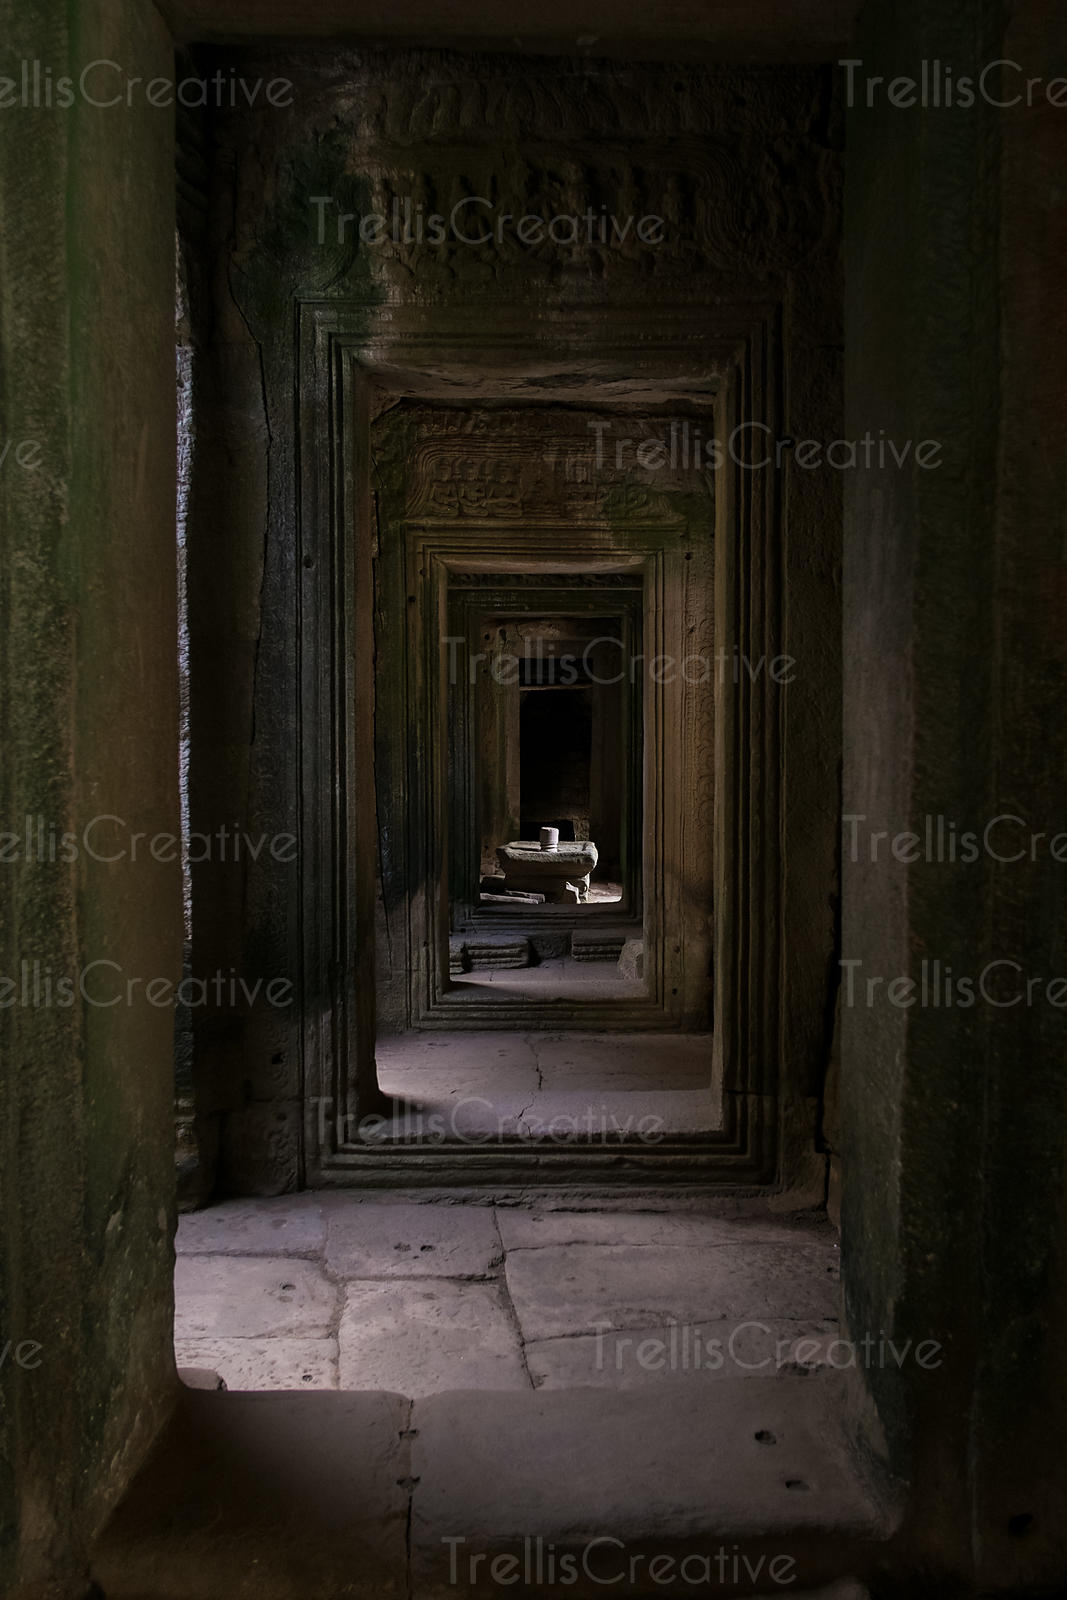 A hallway of doorways in a temple of Angkor Wat, Cambodia